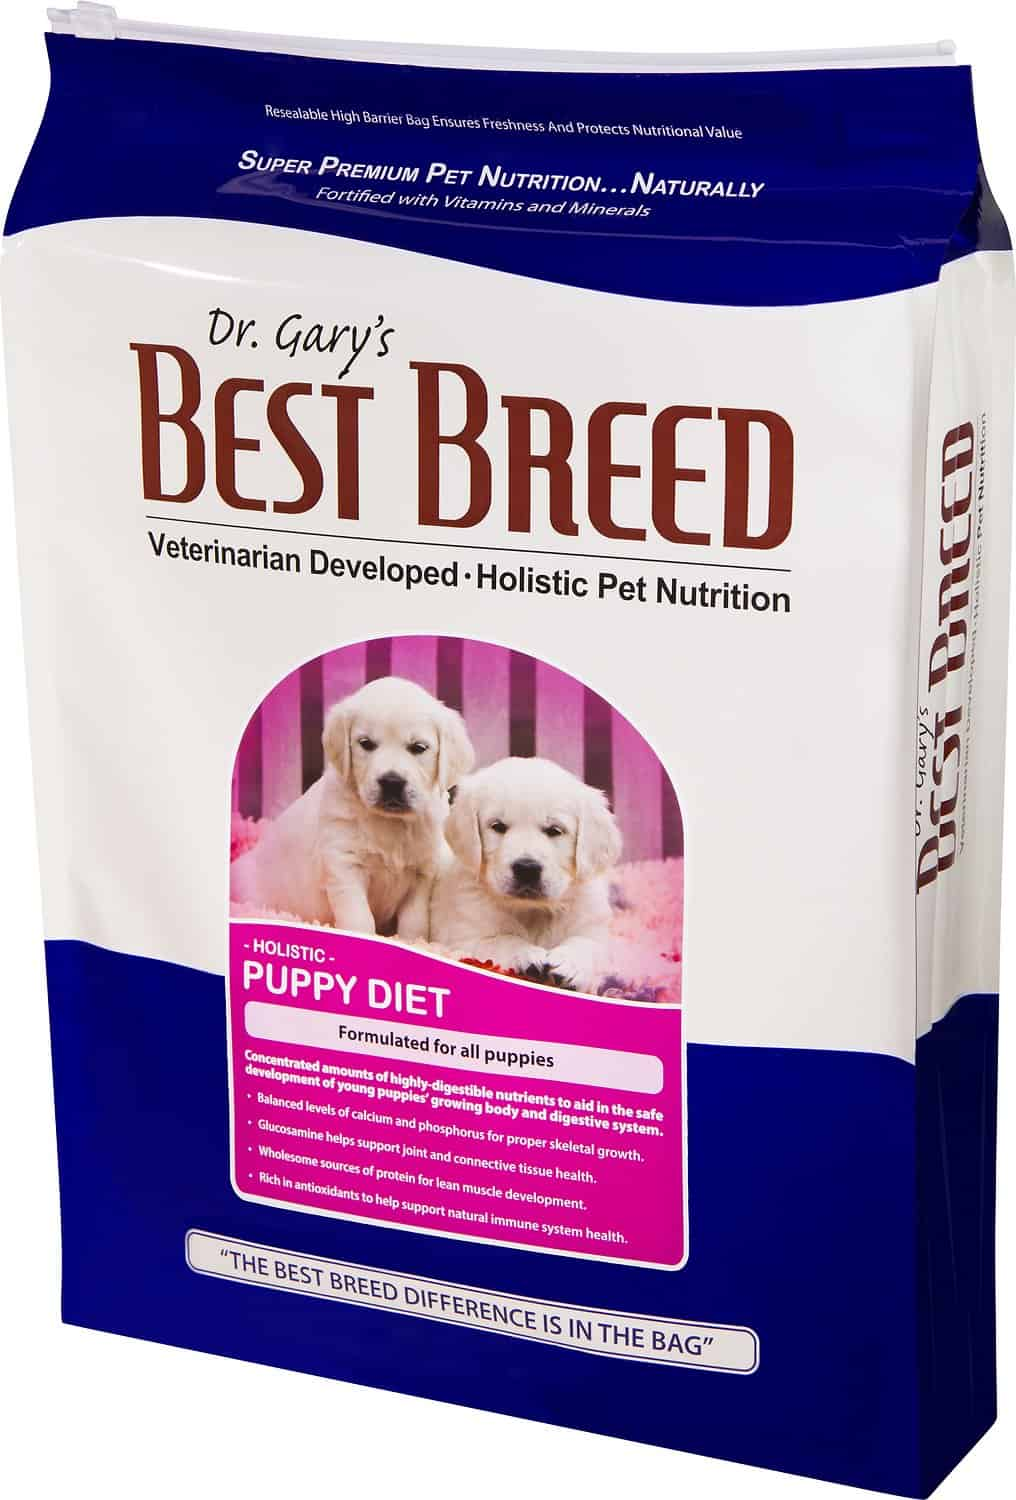 Dr. Gary's Best Breed Dog Food Review 2021: Best Holistic Pet Food? 14